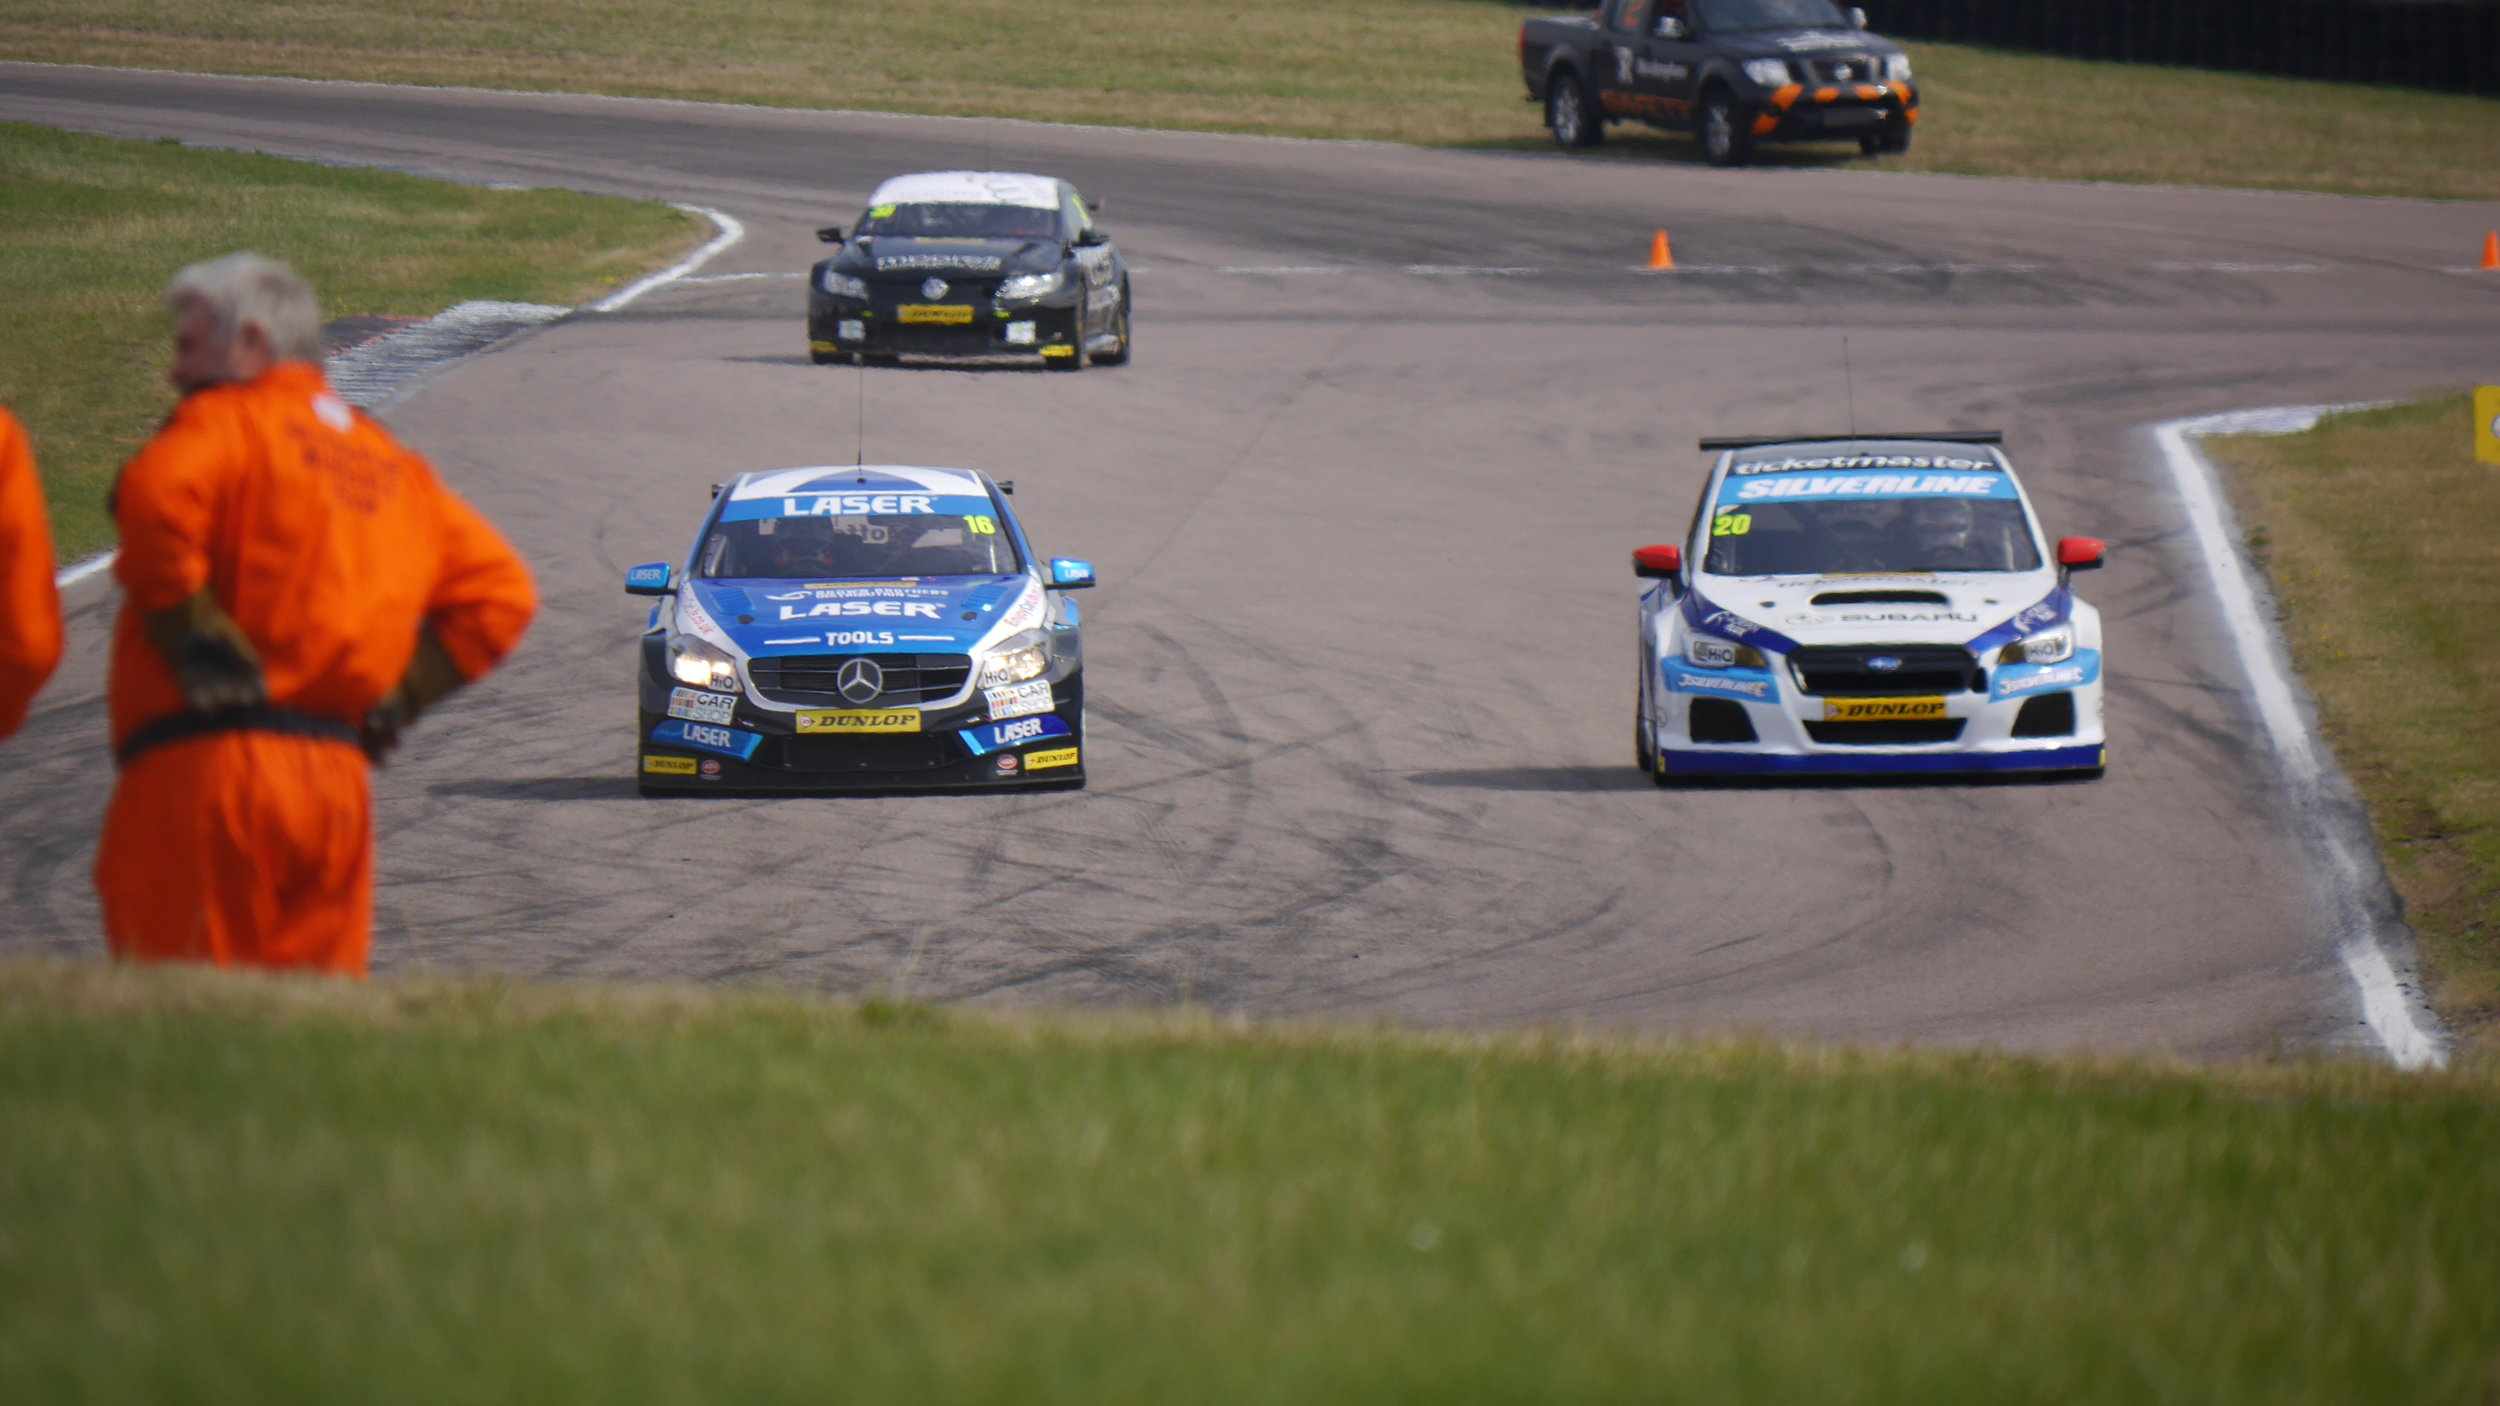 Aiden Moffat and James Cole side-by-side during FP2